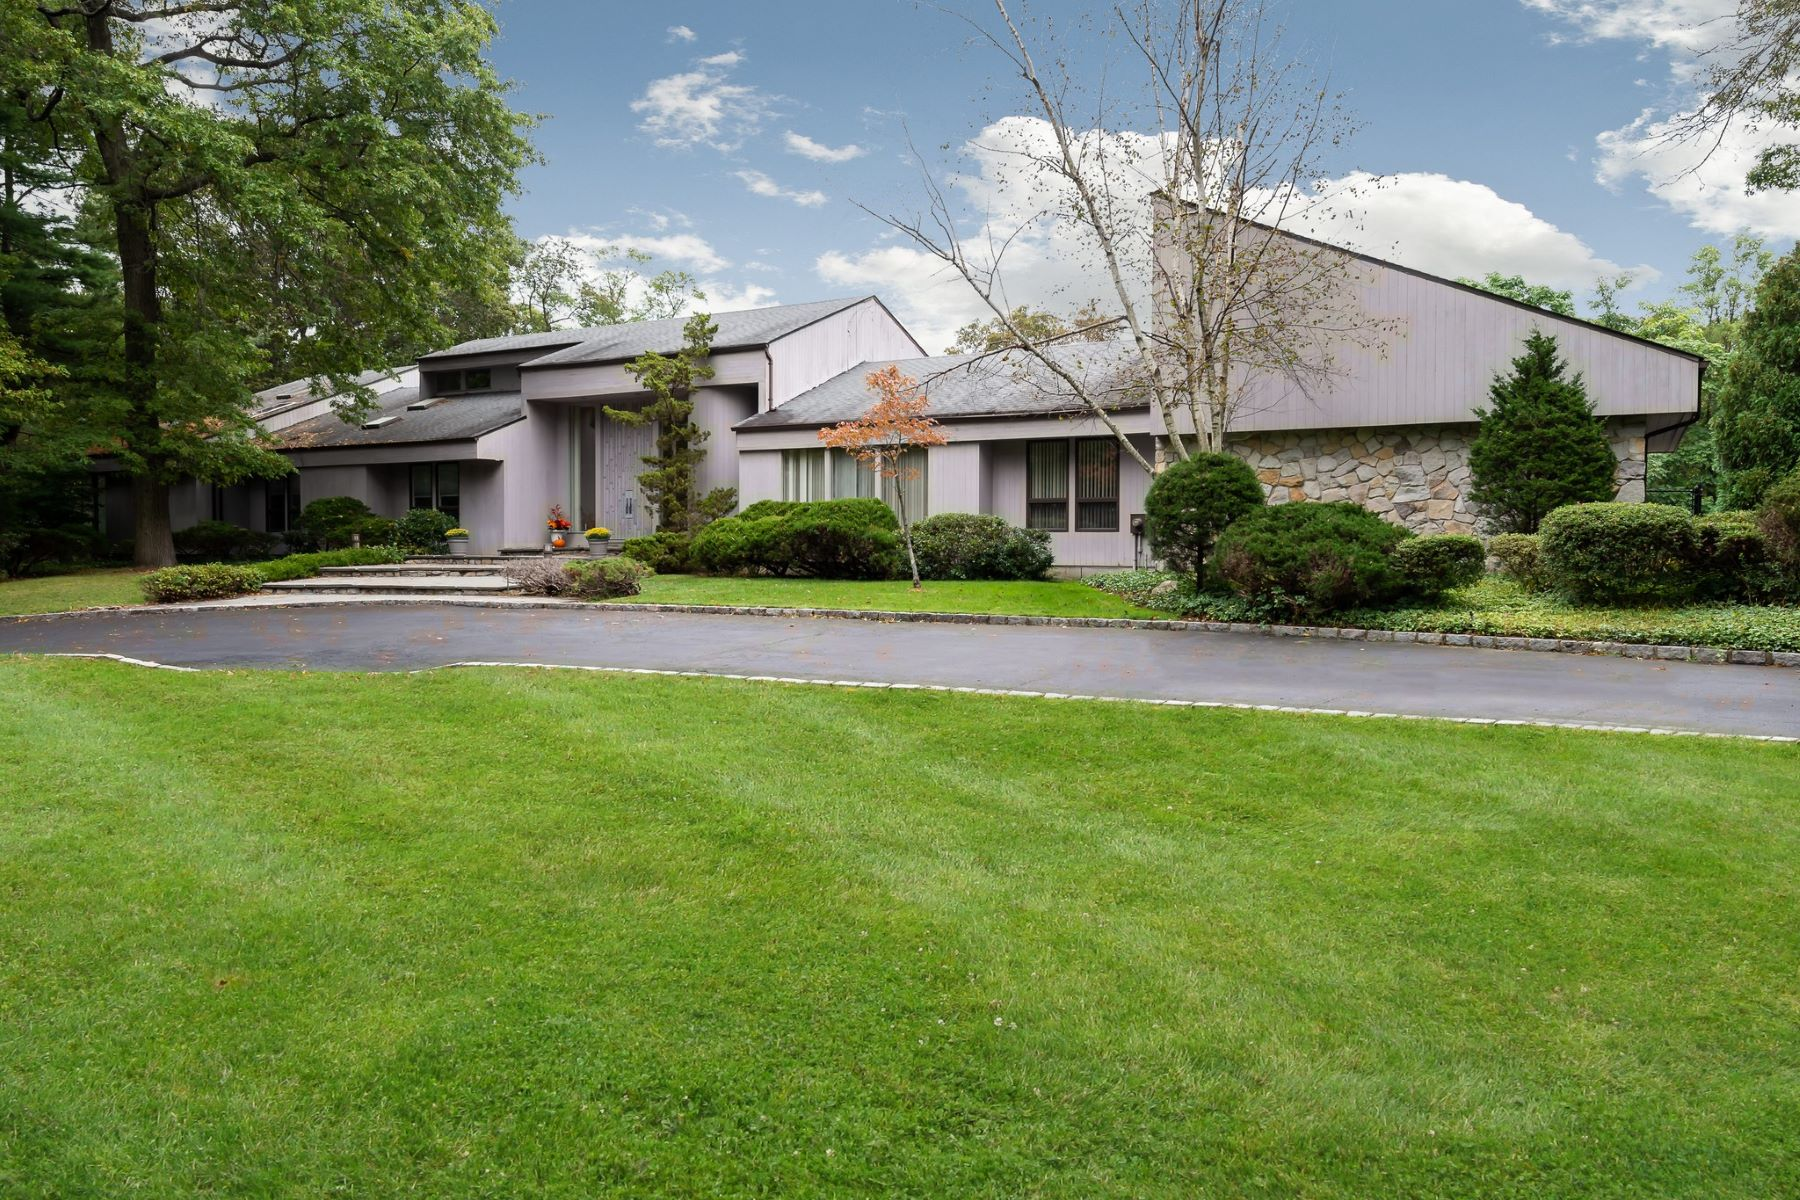 Single Family Homes for Active at Muttontown 10 Serenite Lane Muttontown, New York 11791 United States